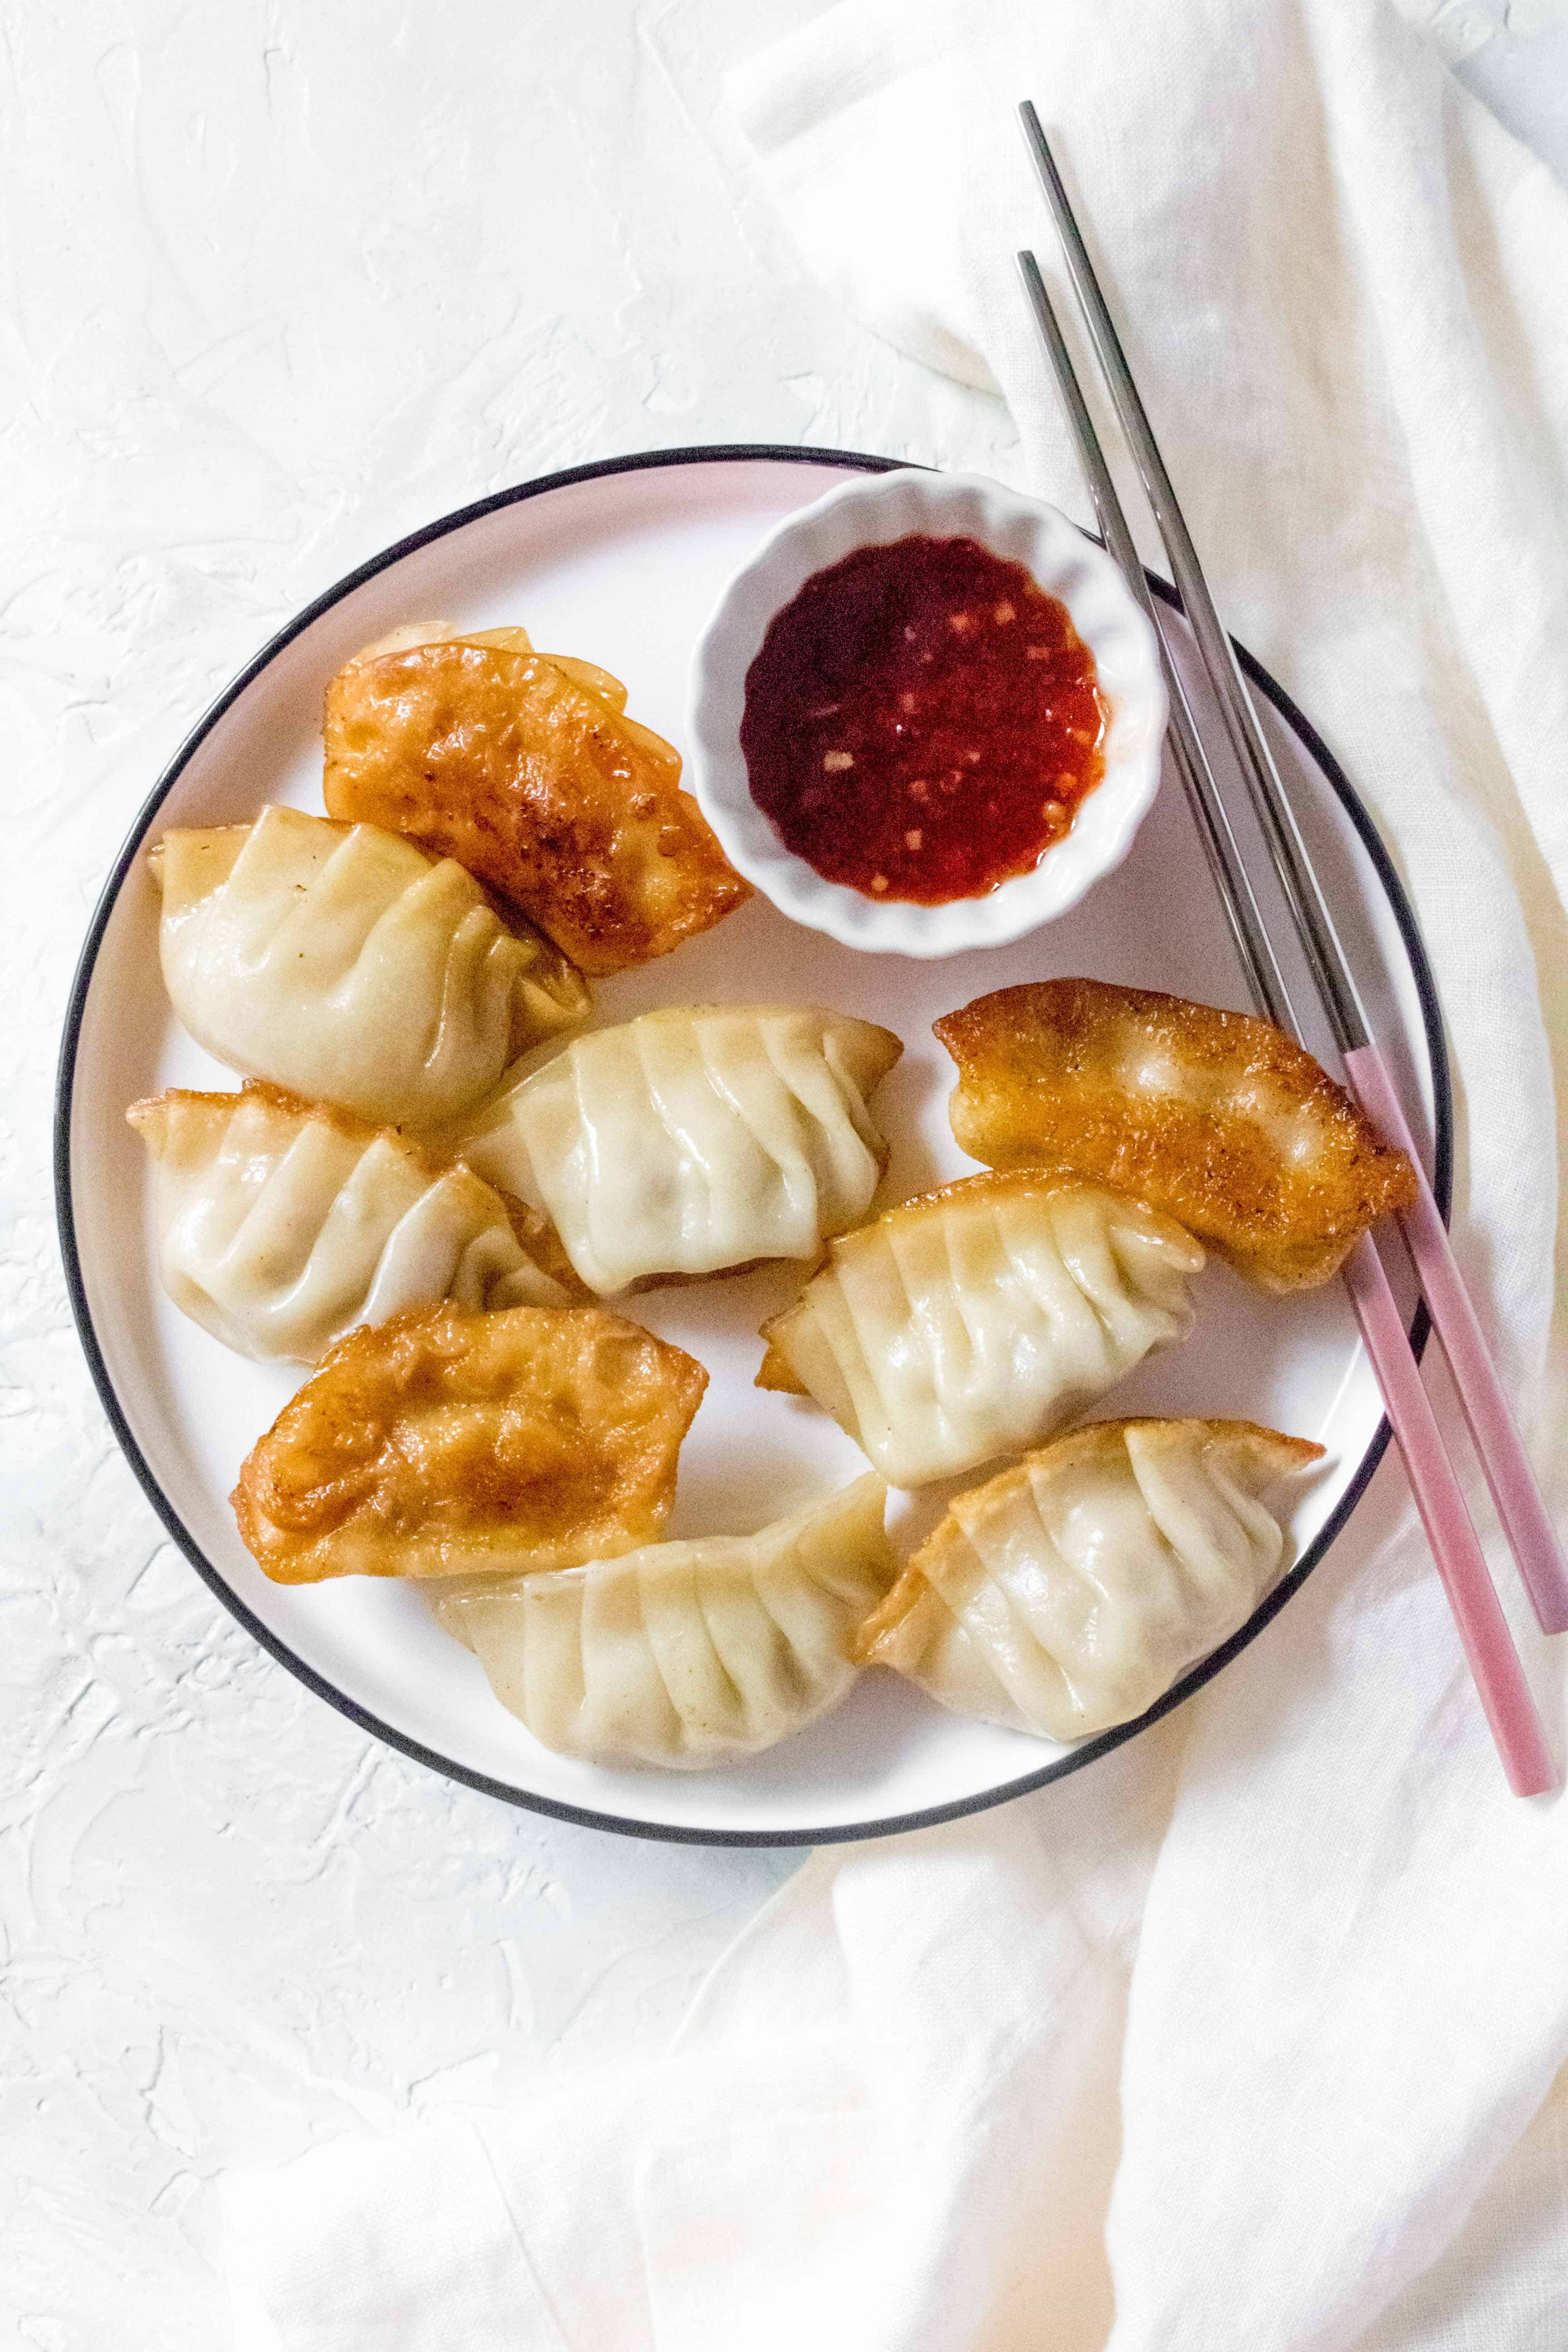 Filled with pork and garlic and have crispy golden bottoms, Pork Potstickers makes for the perfect meal or meal prep. These potstickers are freezer friendly so you can make always have some on hand!